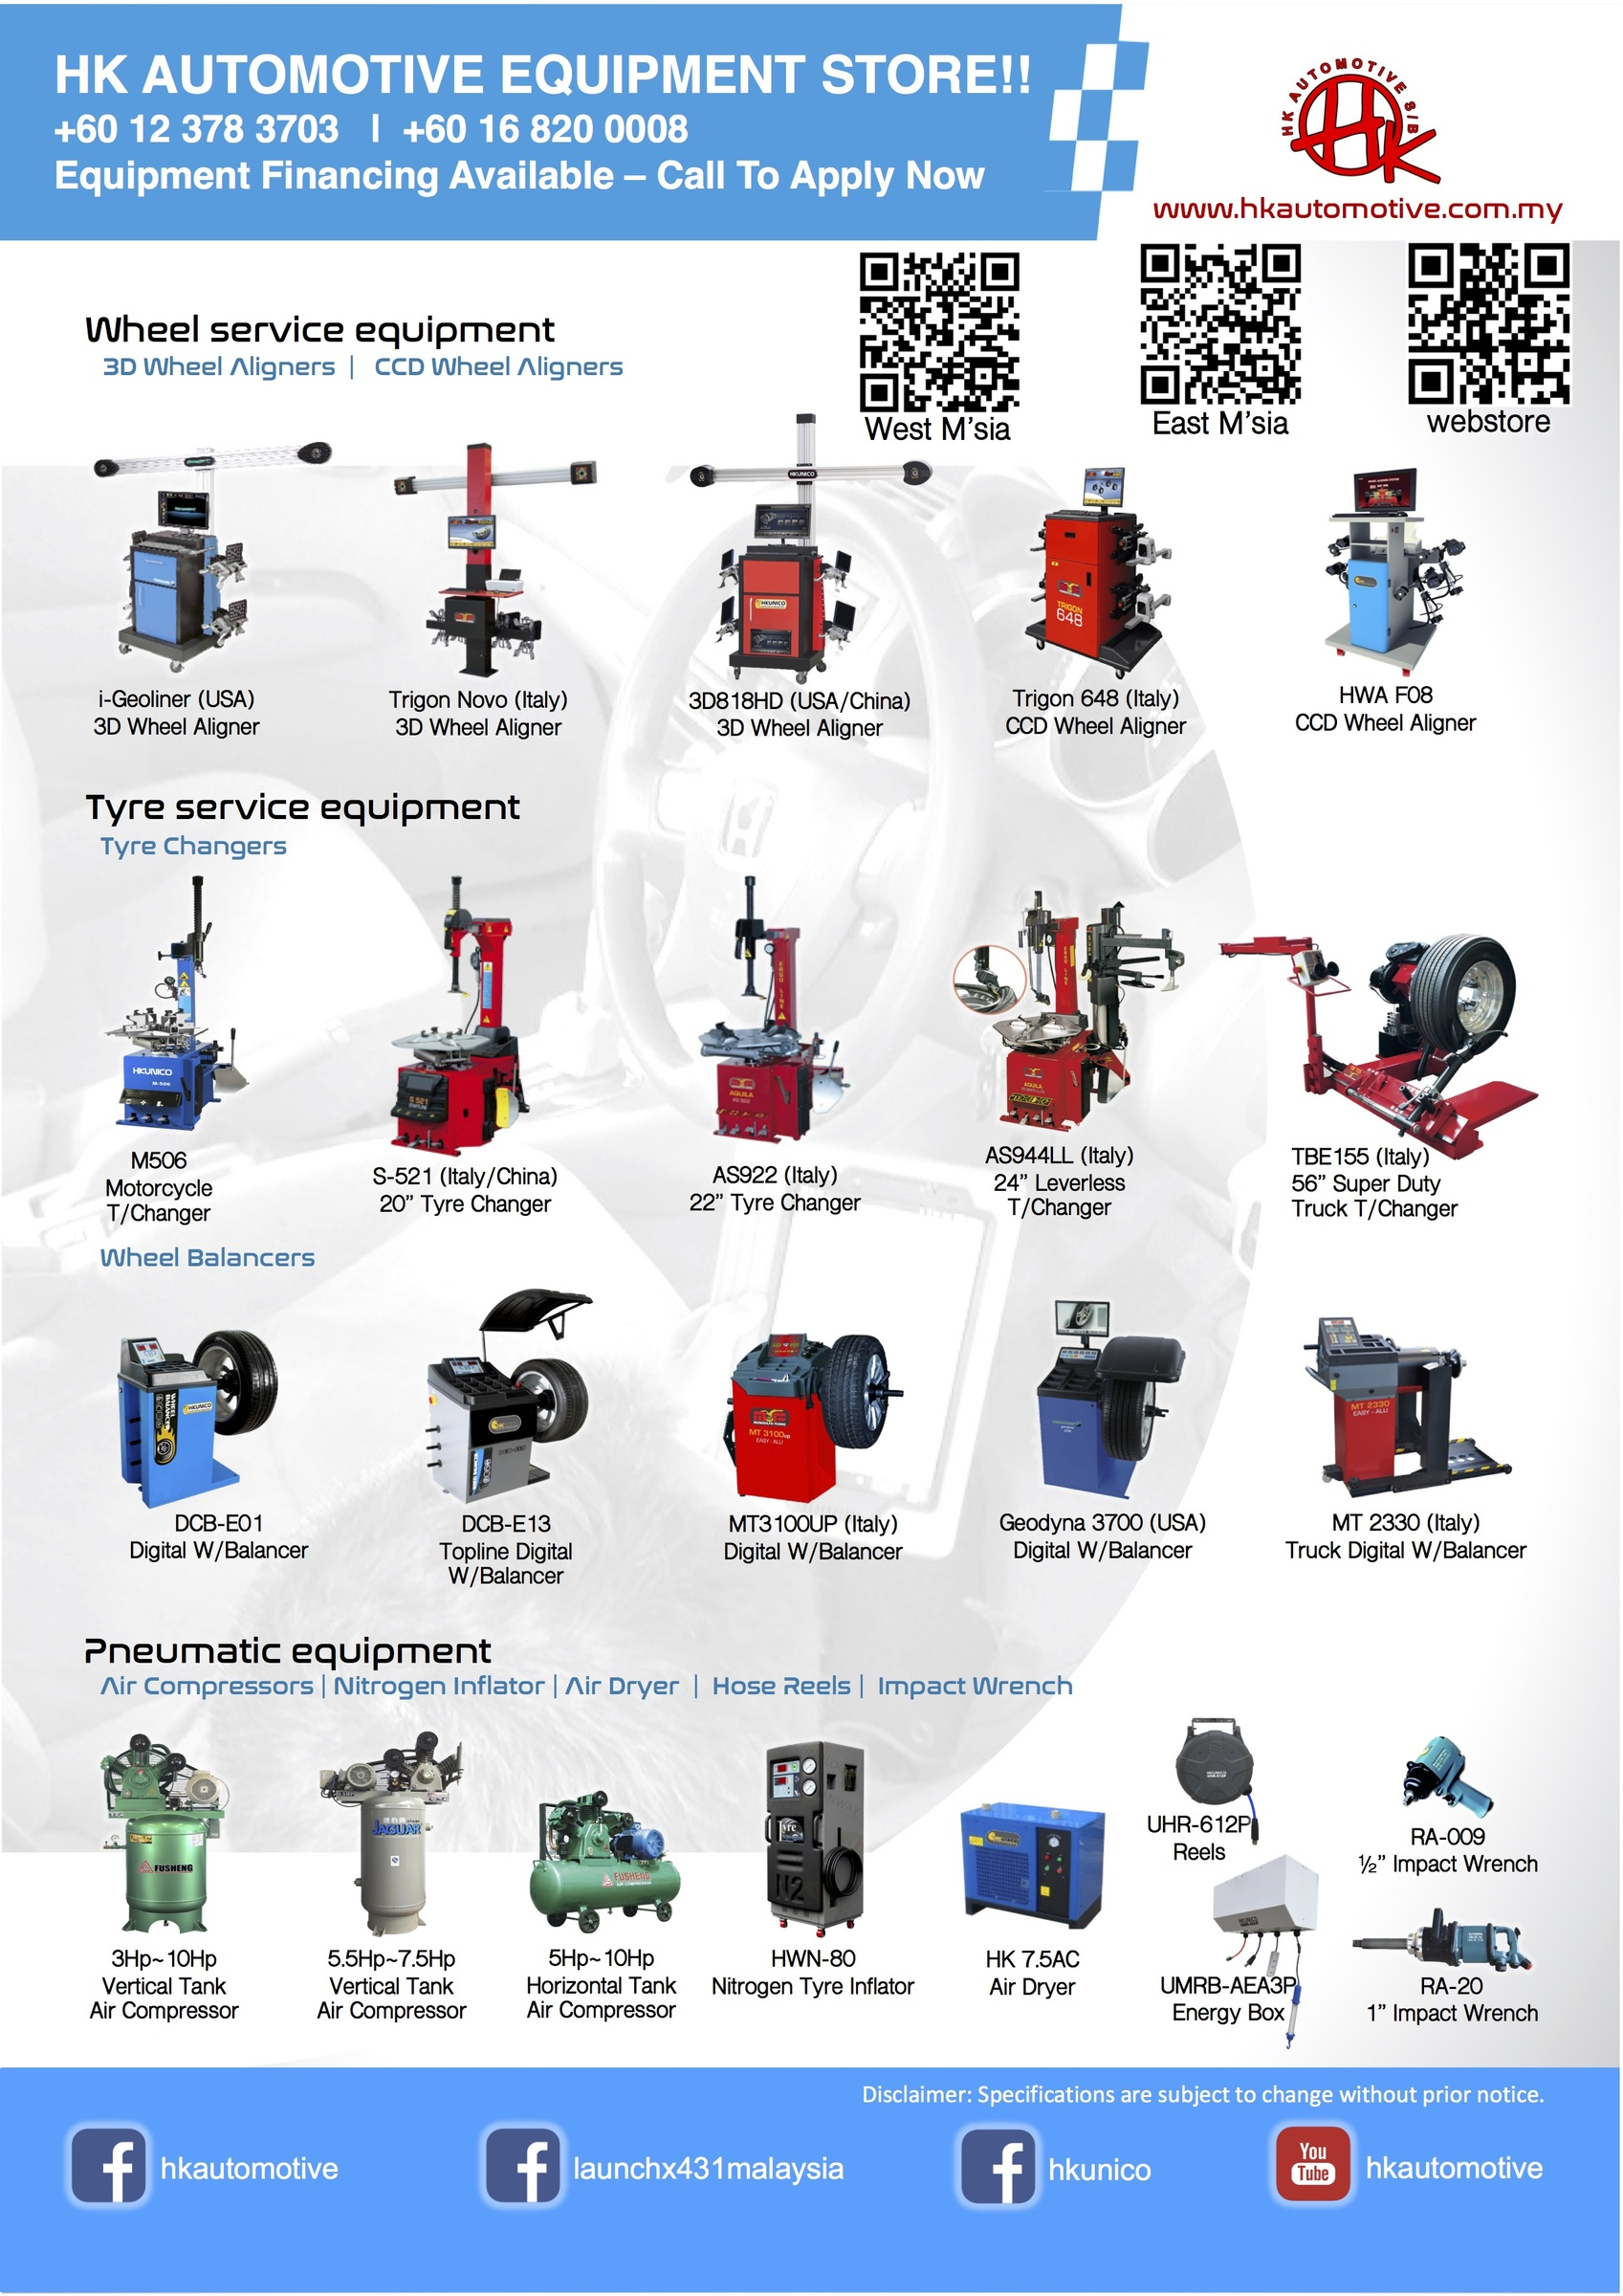 General product flyer_20191122-1.jpg